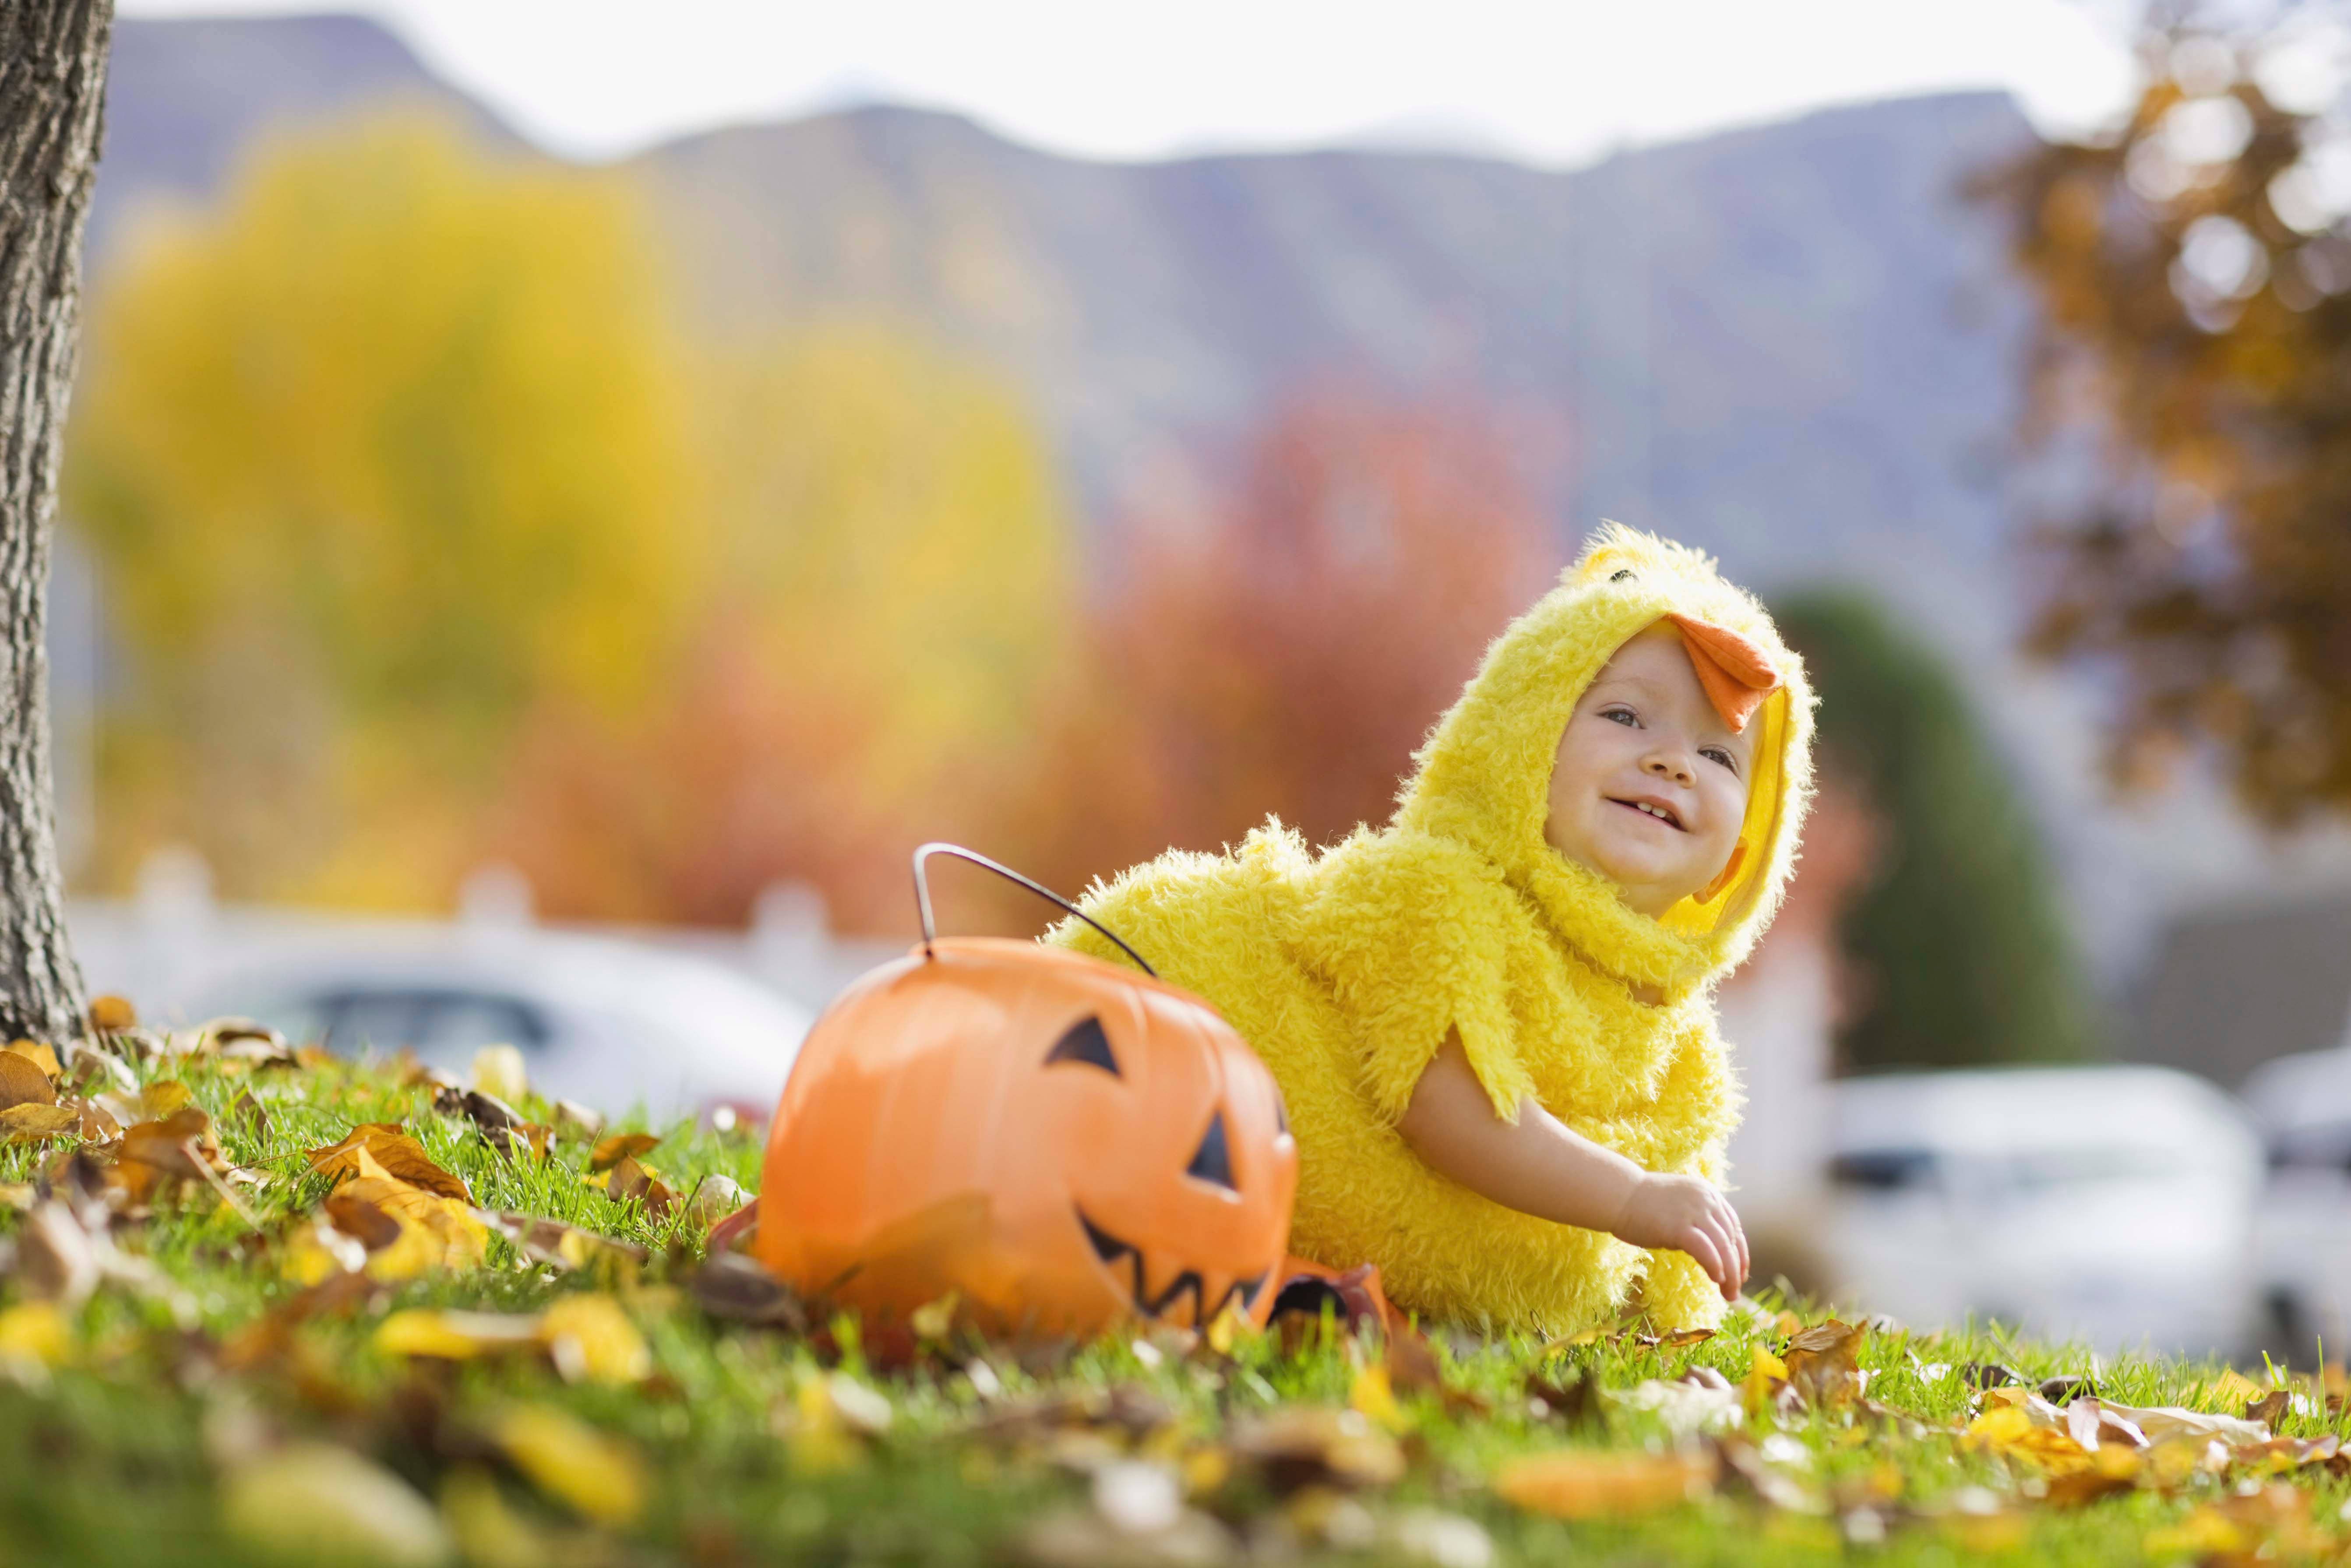 Canva - Toddler in Halloween costume